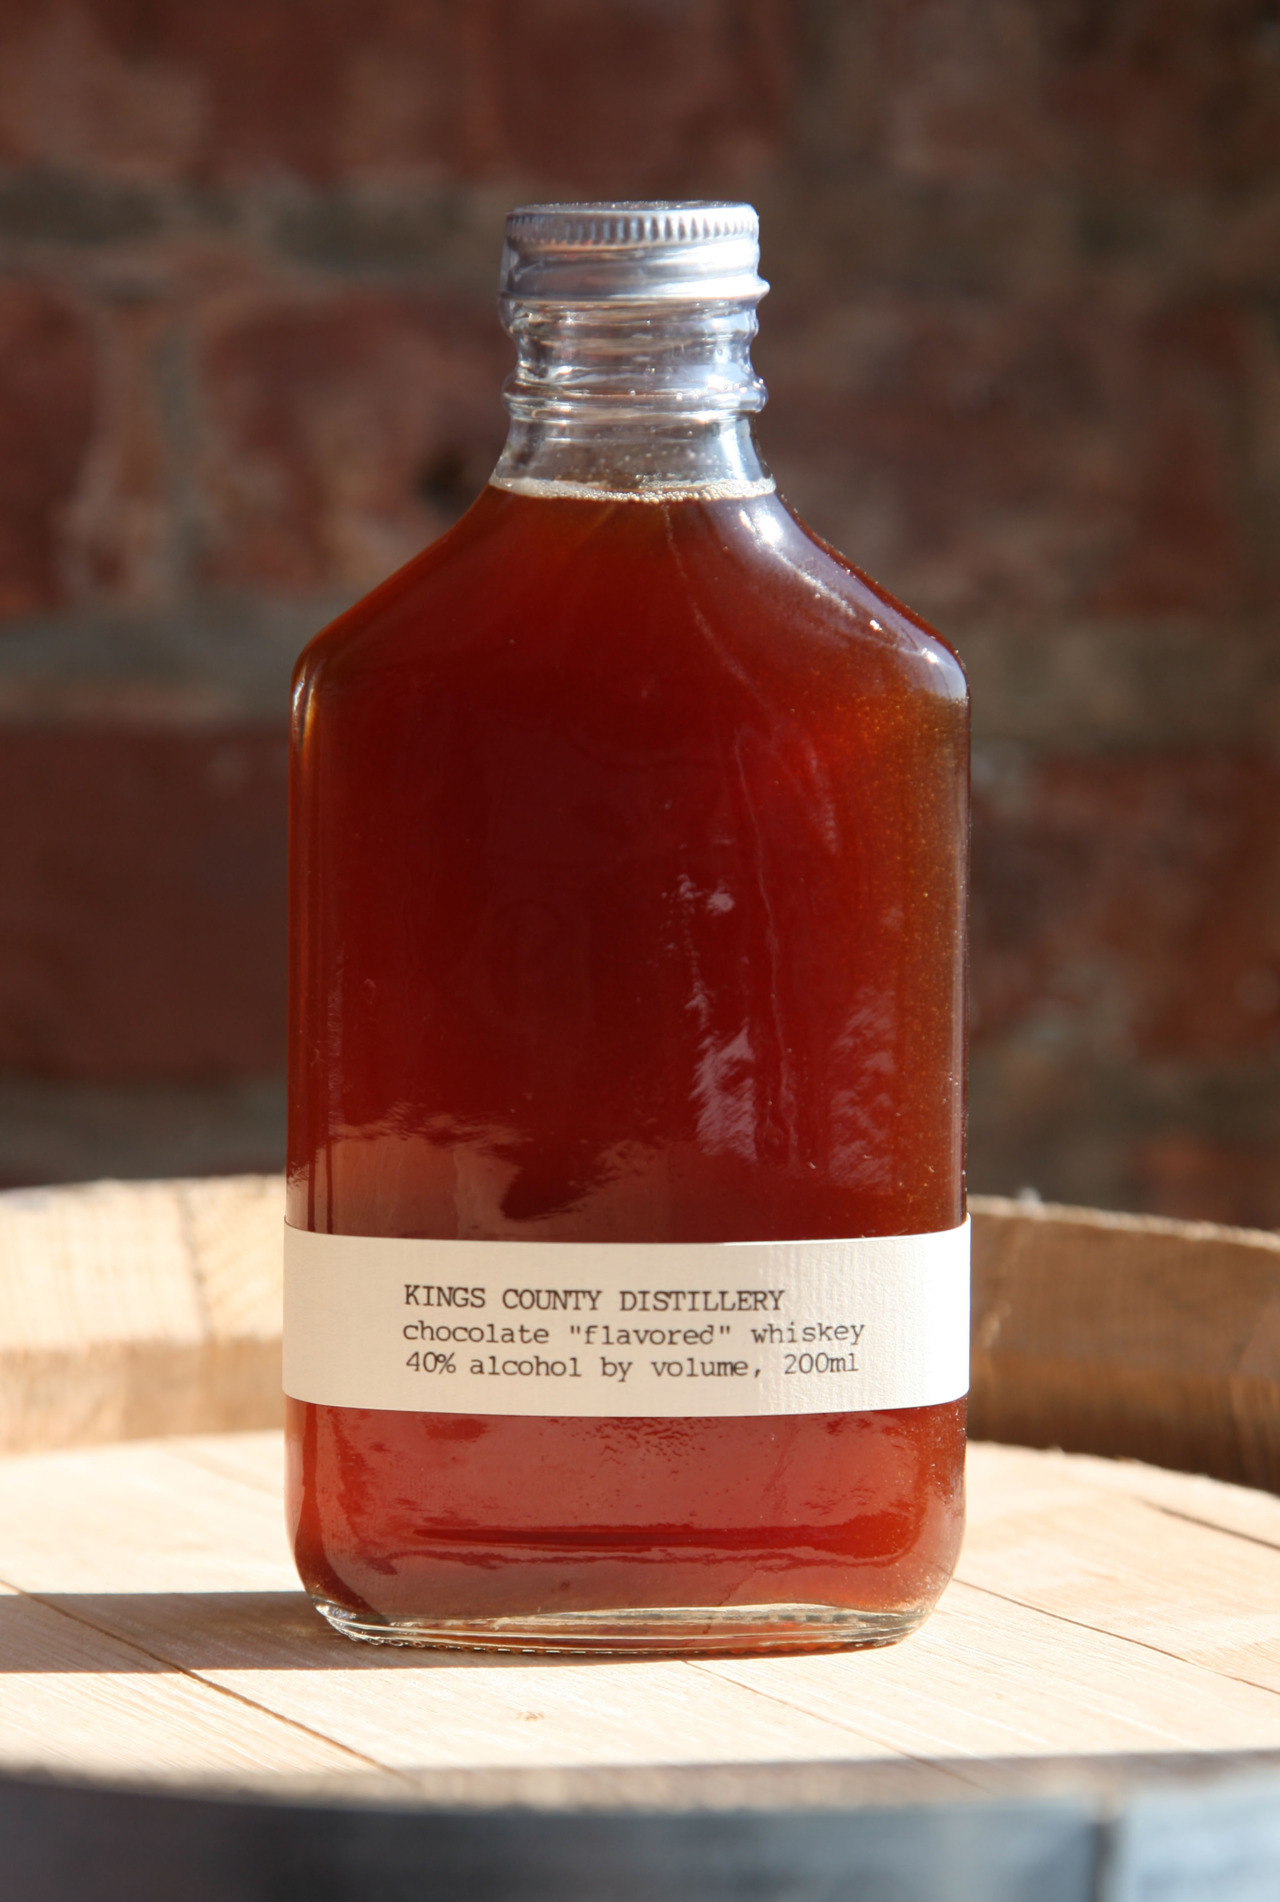 Kings County Chocolate Whiskey using Mast Brothers Chocolate? I'm skeptical, but interested.